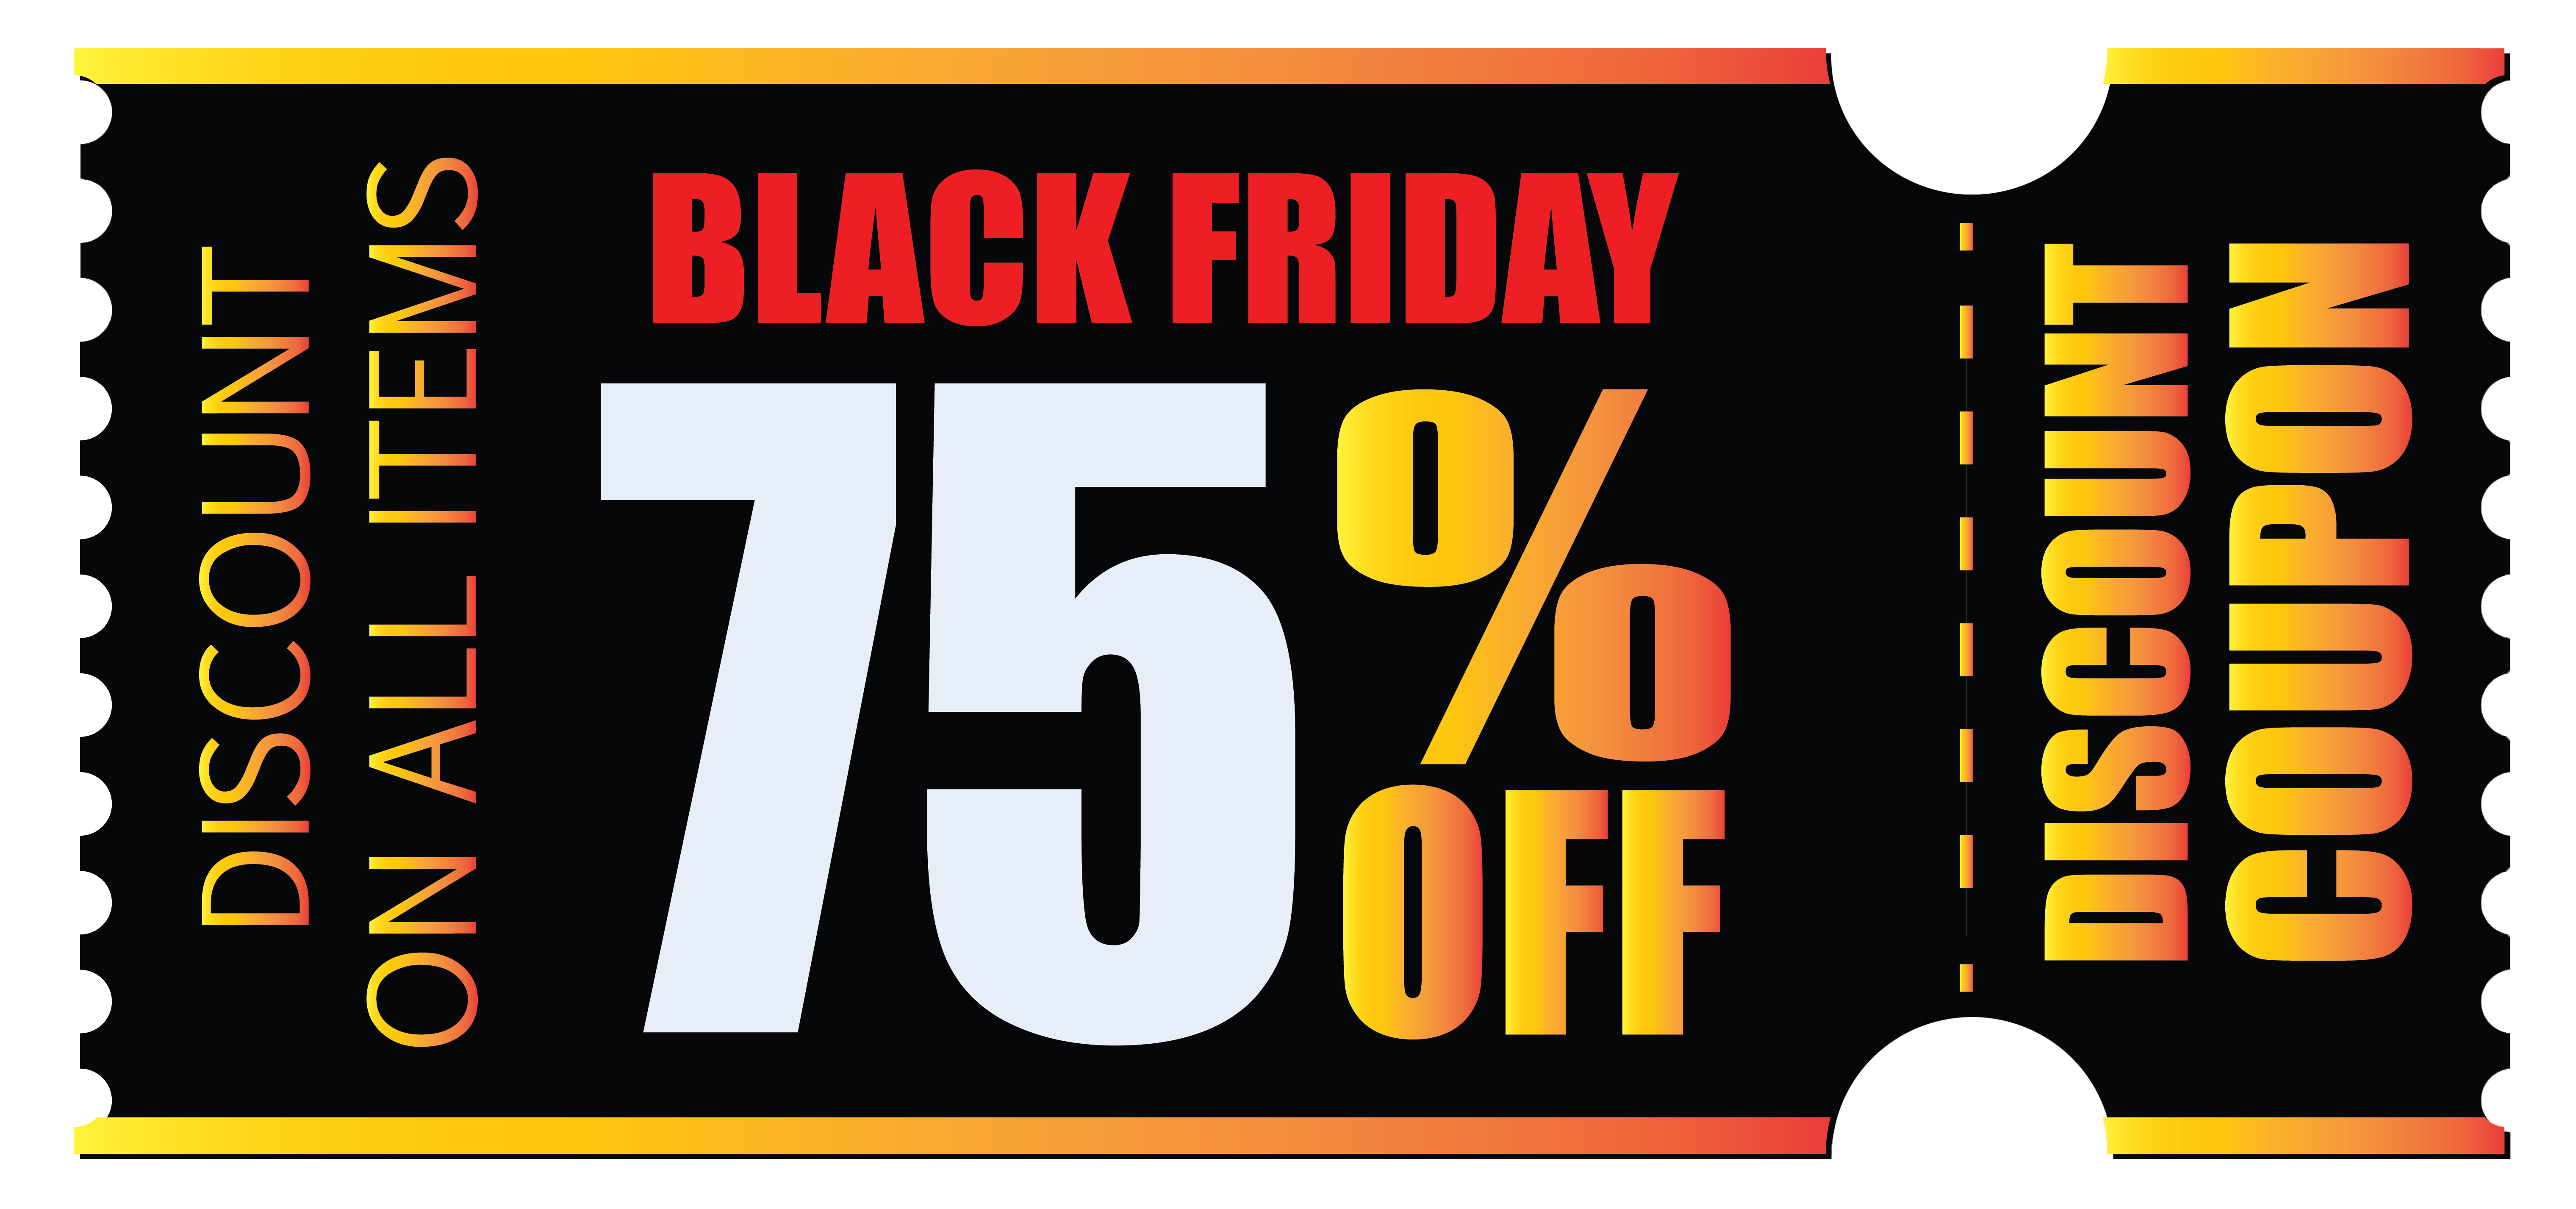 Coupon png. Black friday clipart picture